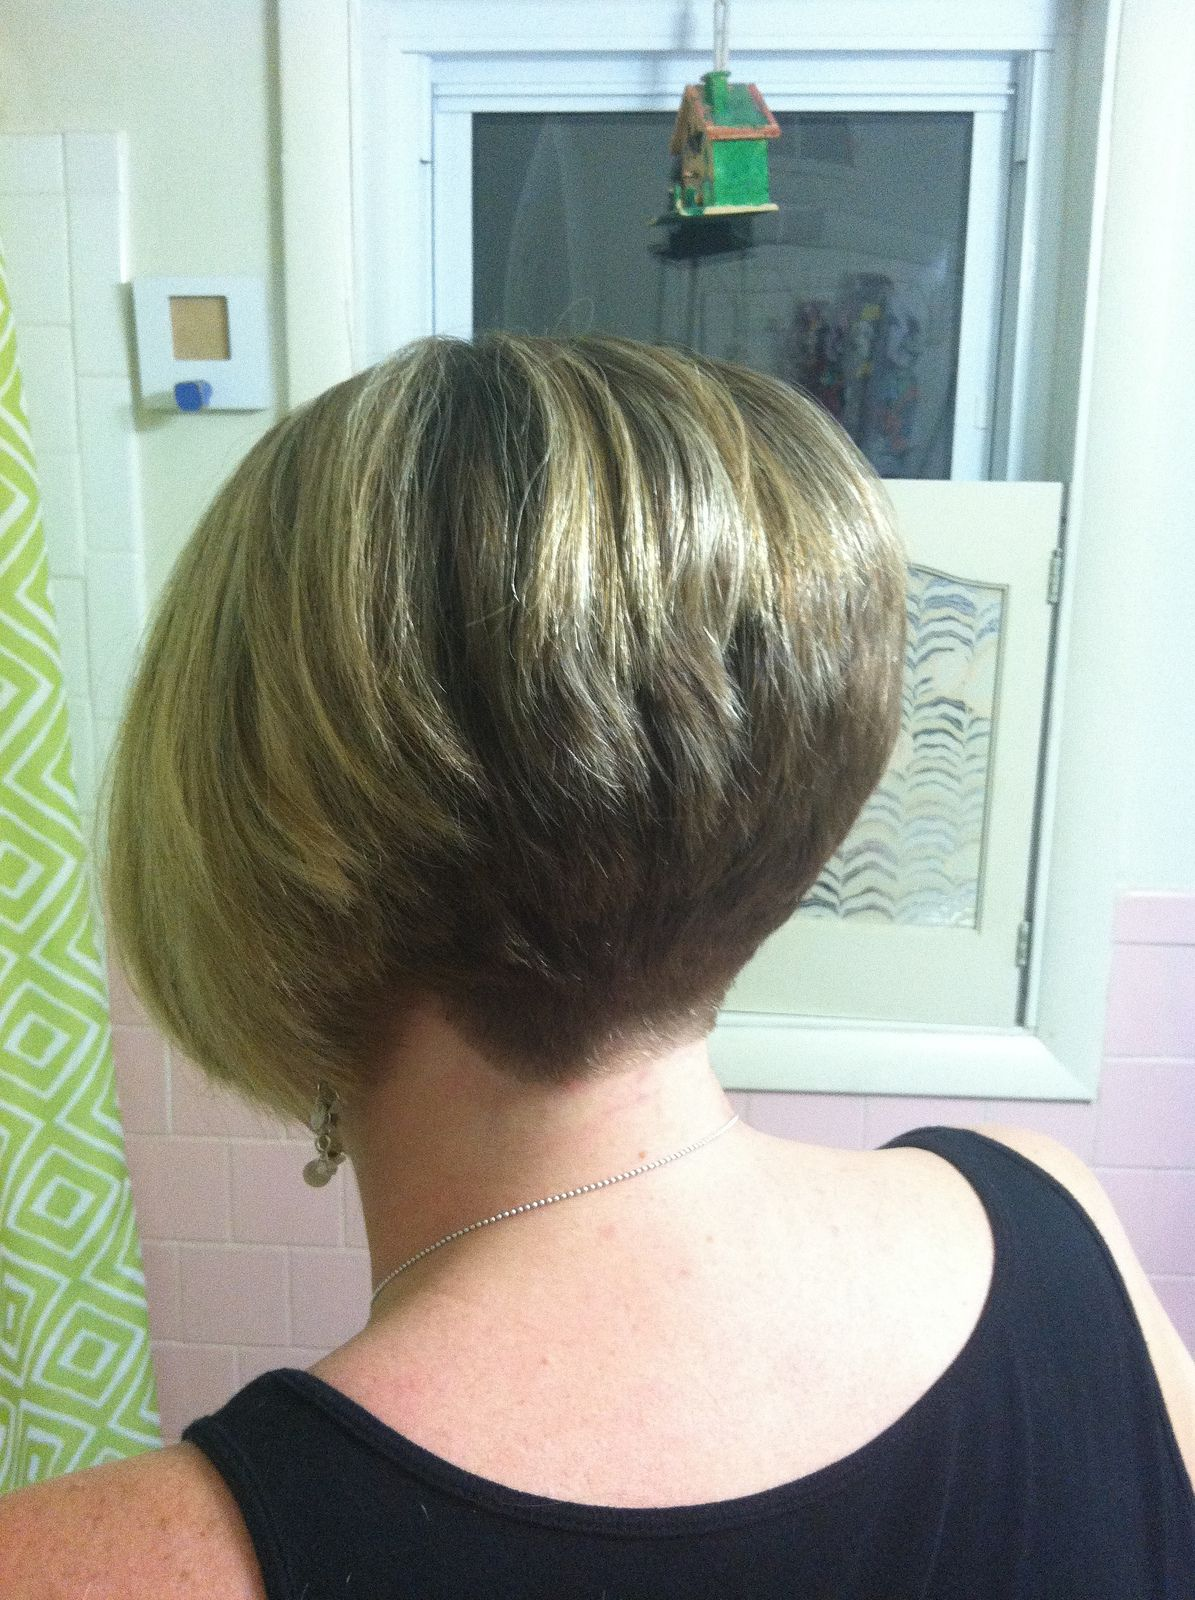 Stylish Short Hairstyles Wedge Hairstyles Stacked Pinterest